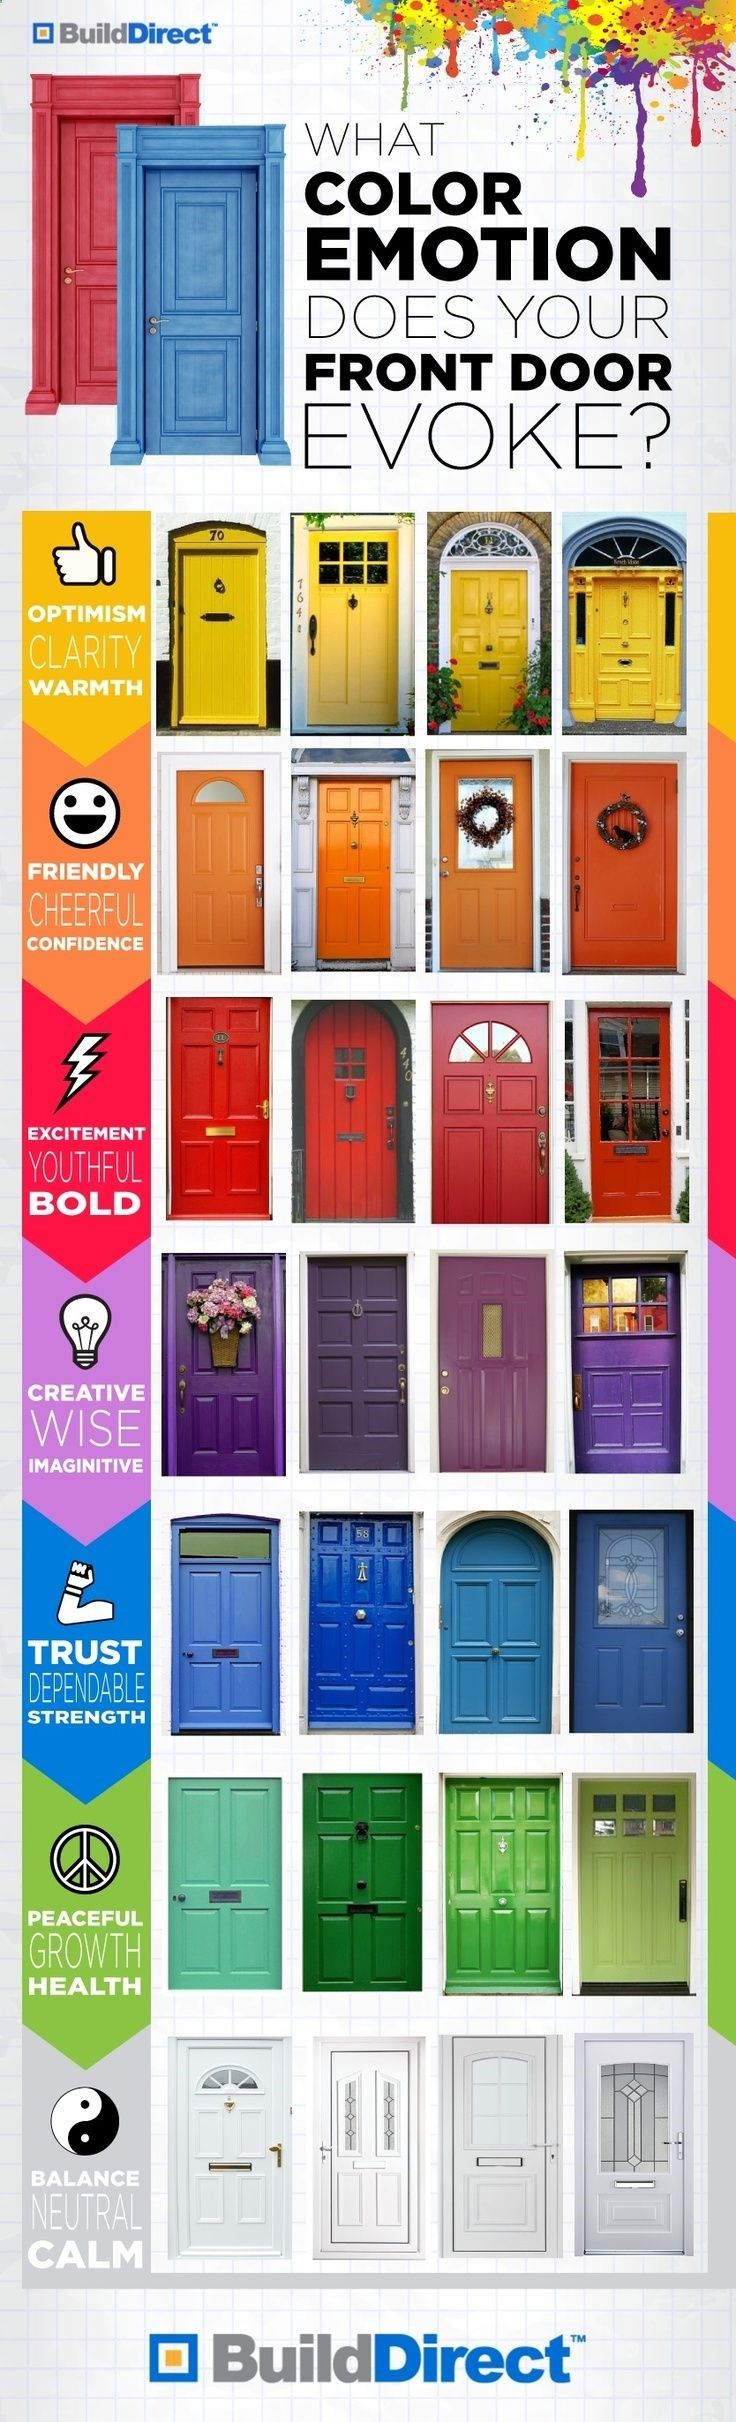 What color emotion does your front door evoke? I really want a yellow door!